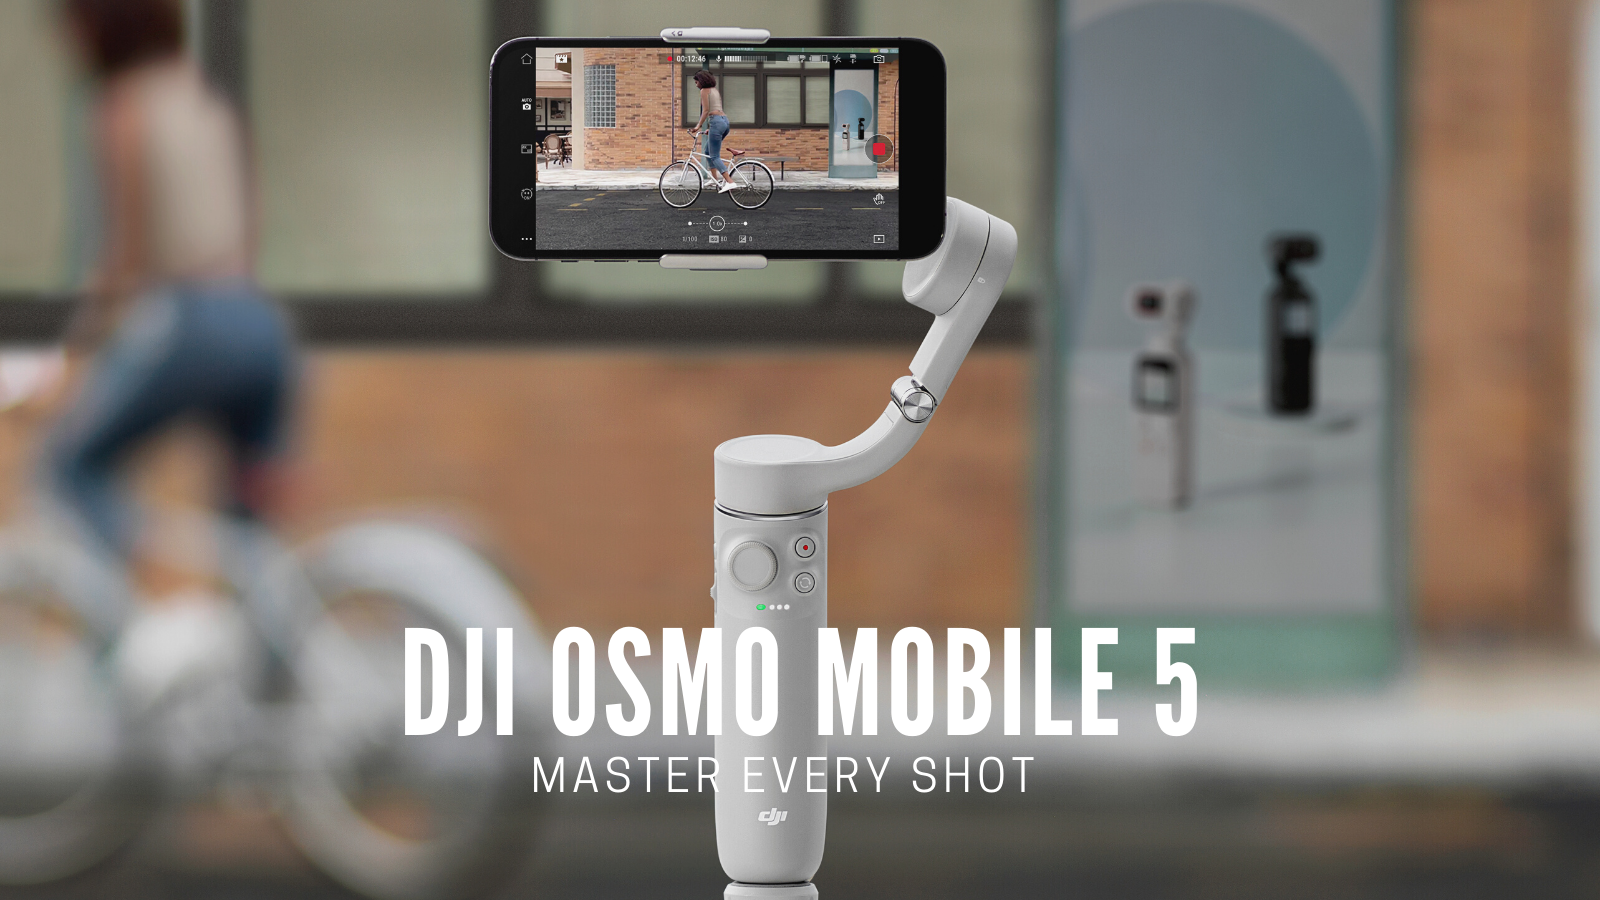 DJI Osmo Mobile 5 - Features, Price, Release Date